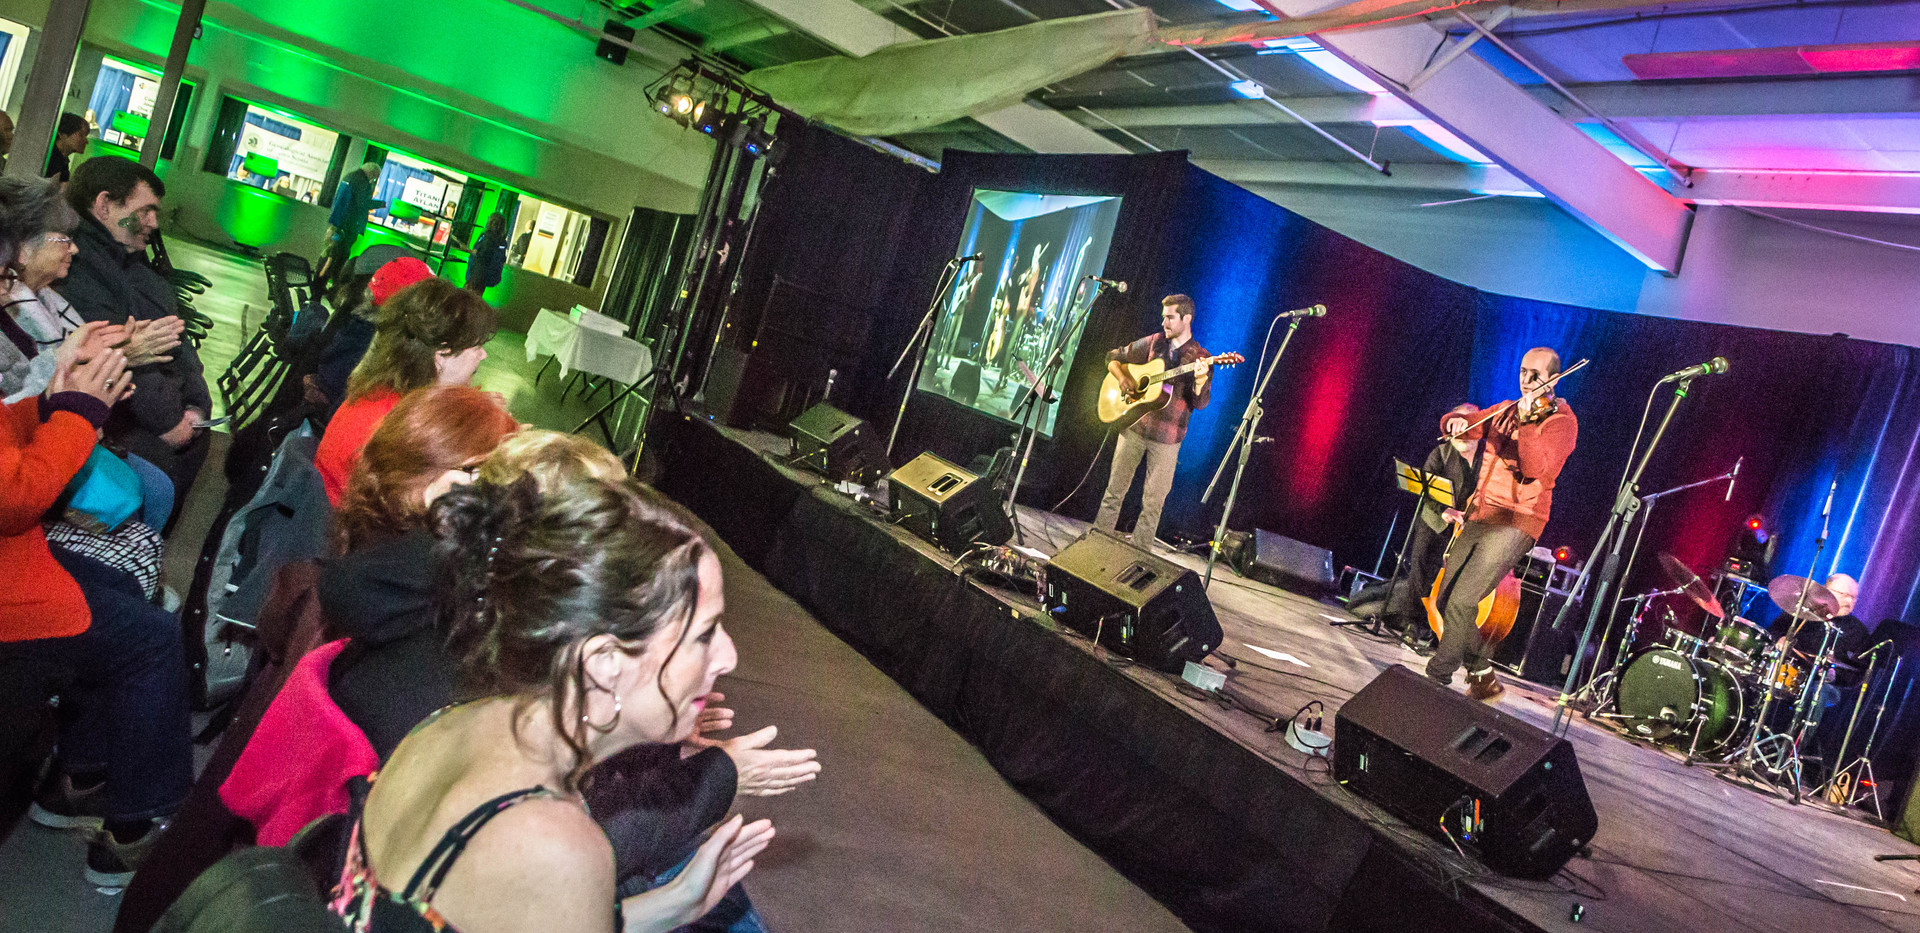 Halifax Celtic Festival 2020. Photos by Adele Beaton.